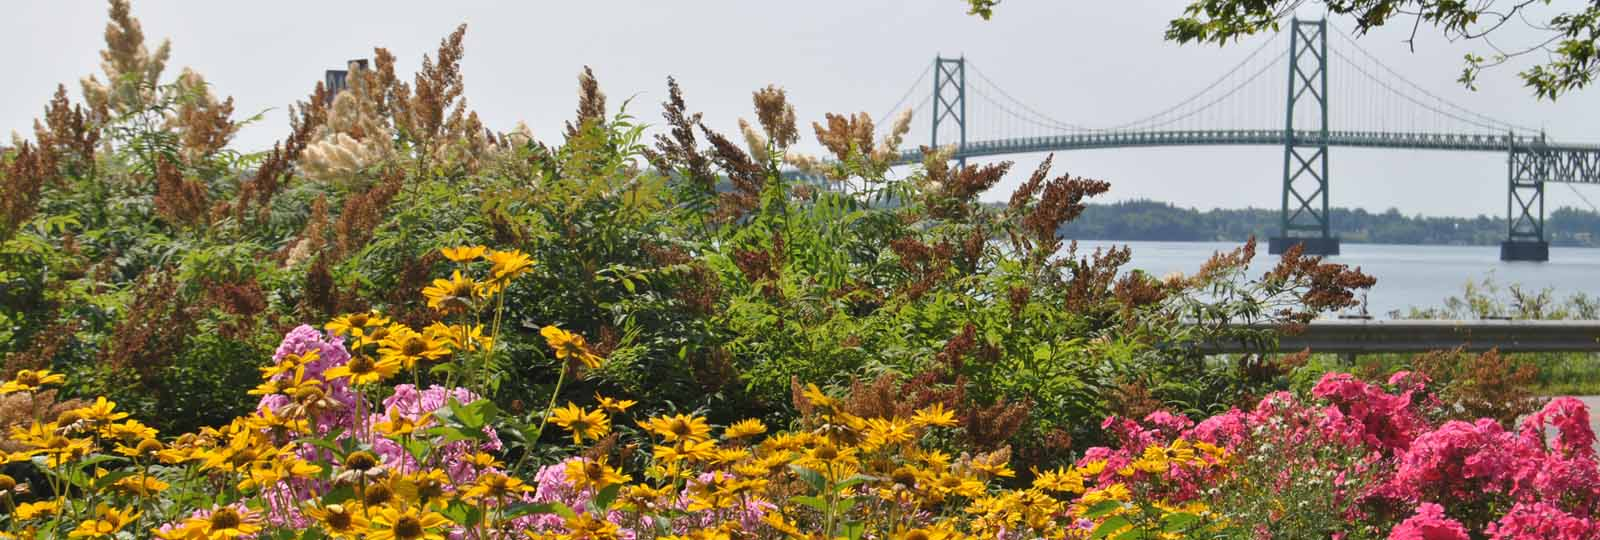 Flower gardens with the 1000 Islands Bridge in the background